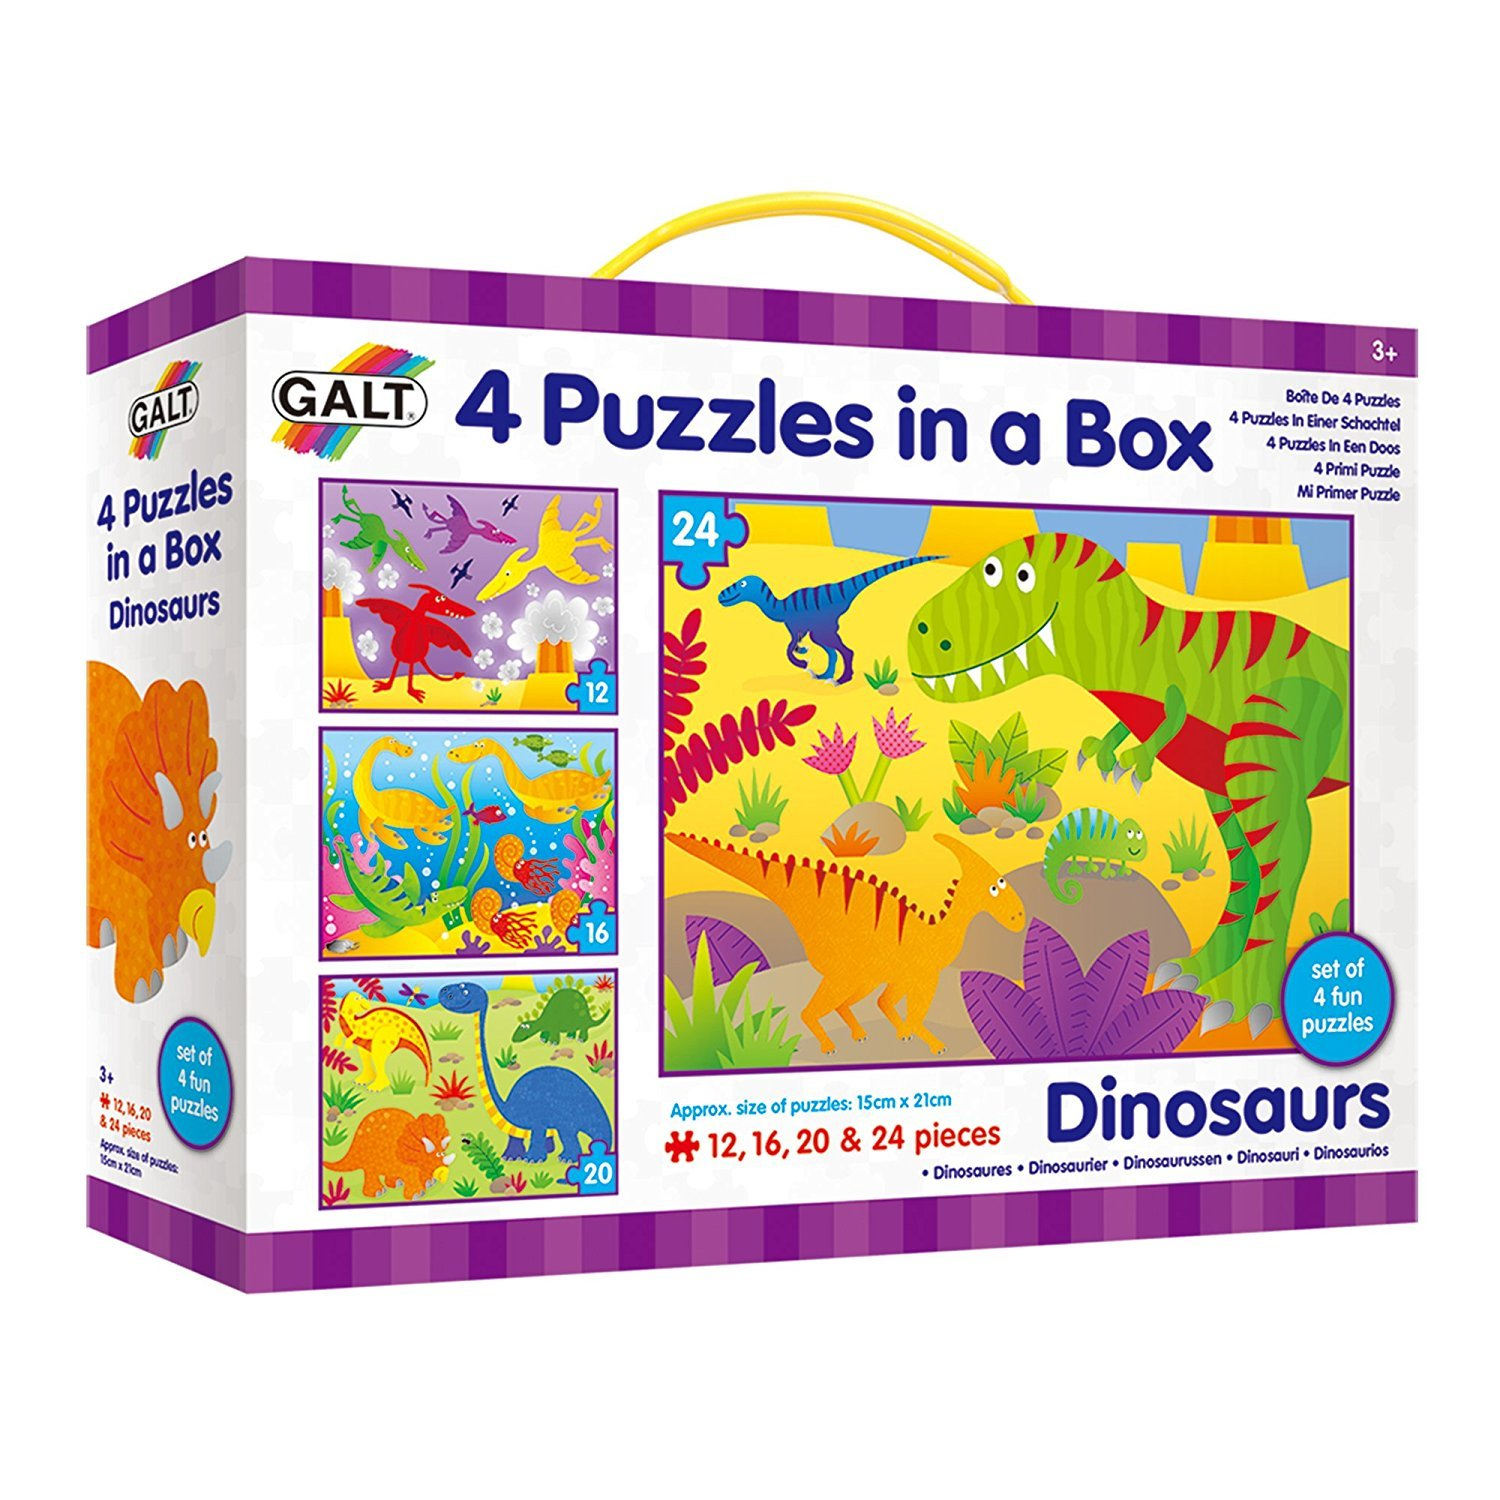 Dinosaurs Mdf Toy Box Childrens Storage Toys Games Books: DINOSAUR PUZZLES AT PUZZLE PALACE AUSTRALIA ONLINE STORE